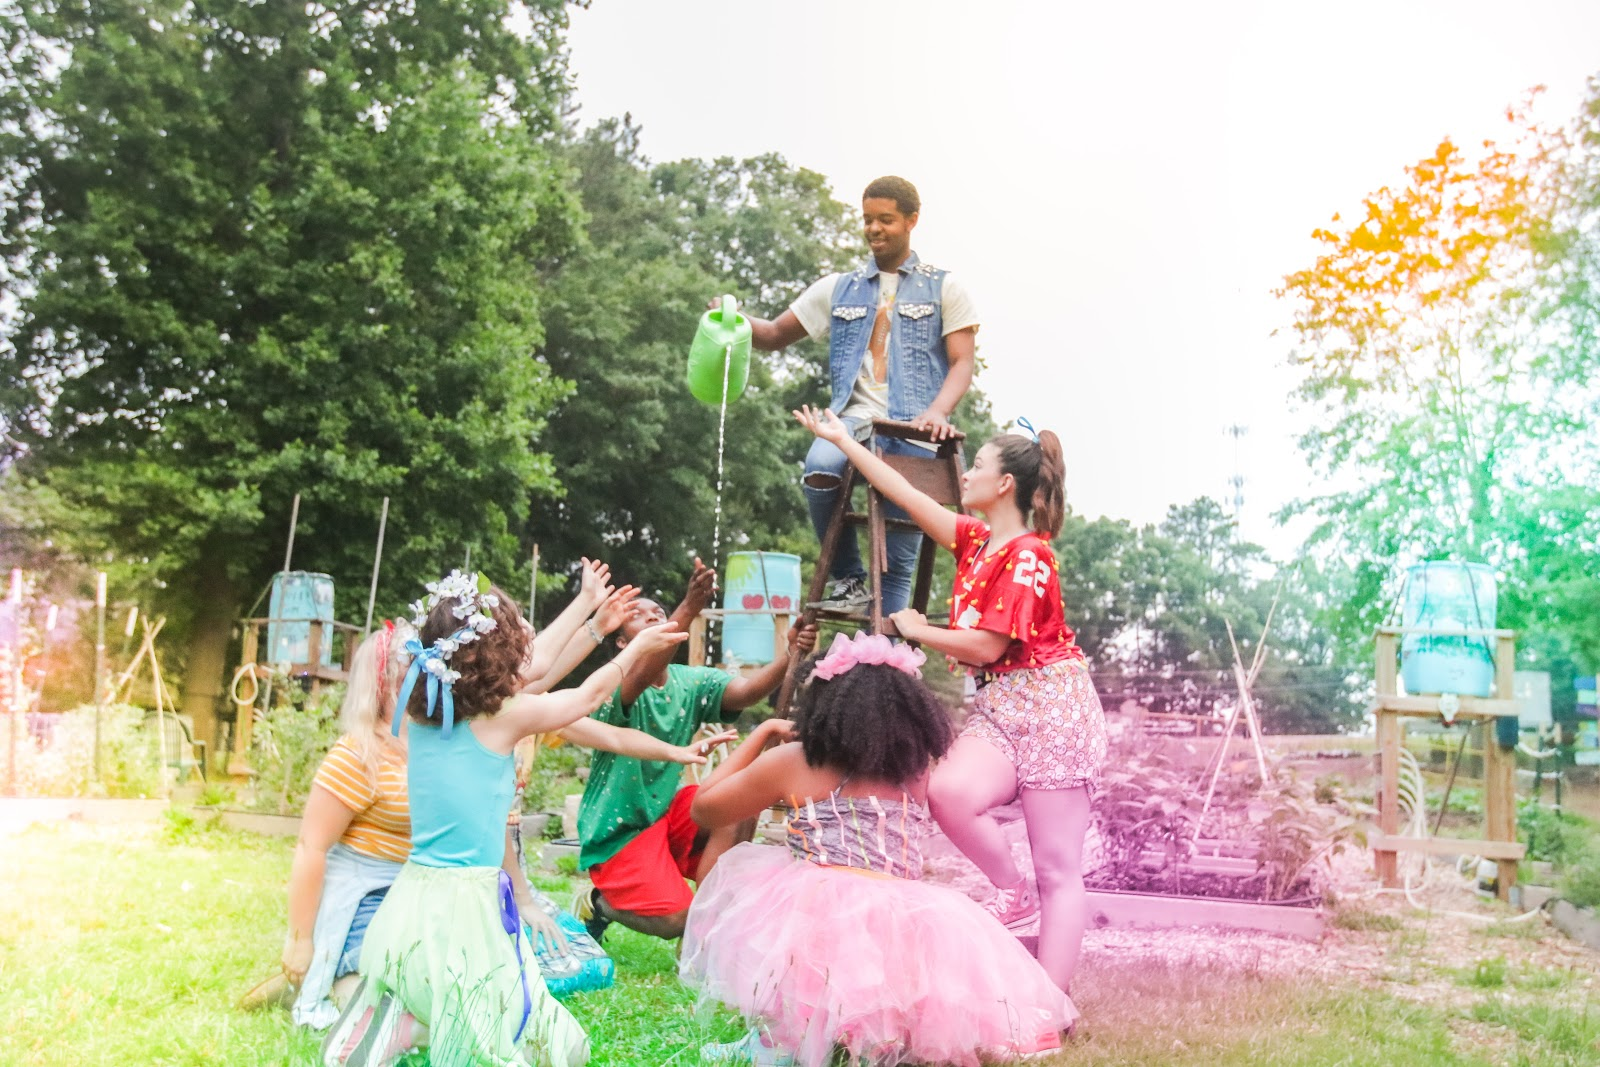 Nomad Theatre Company Launches With Inaugural Production Of GODSPELL